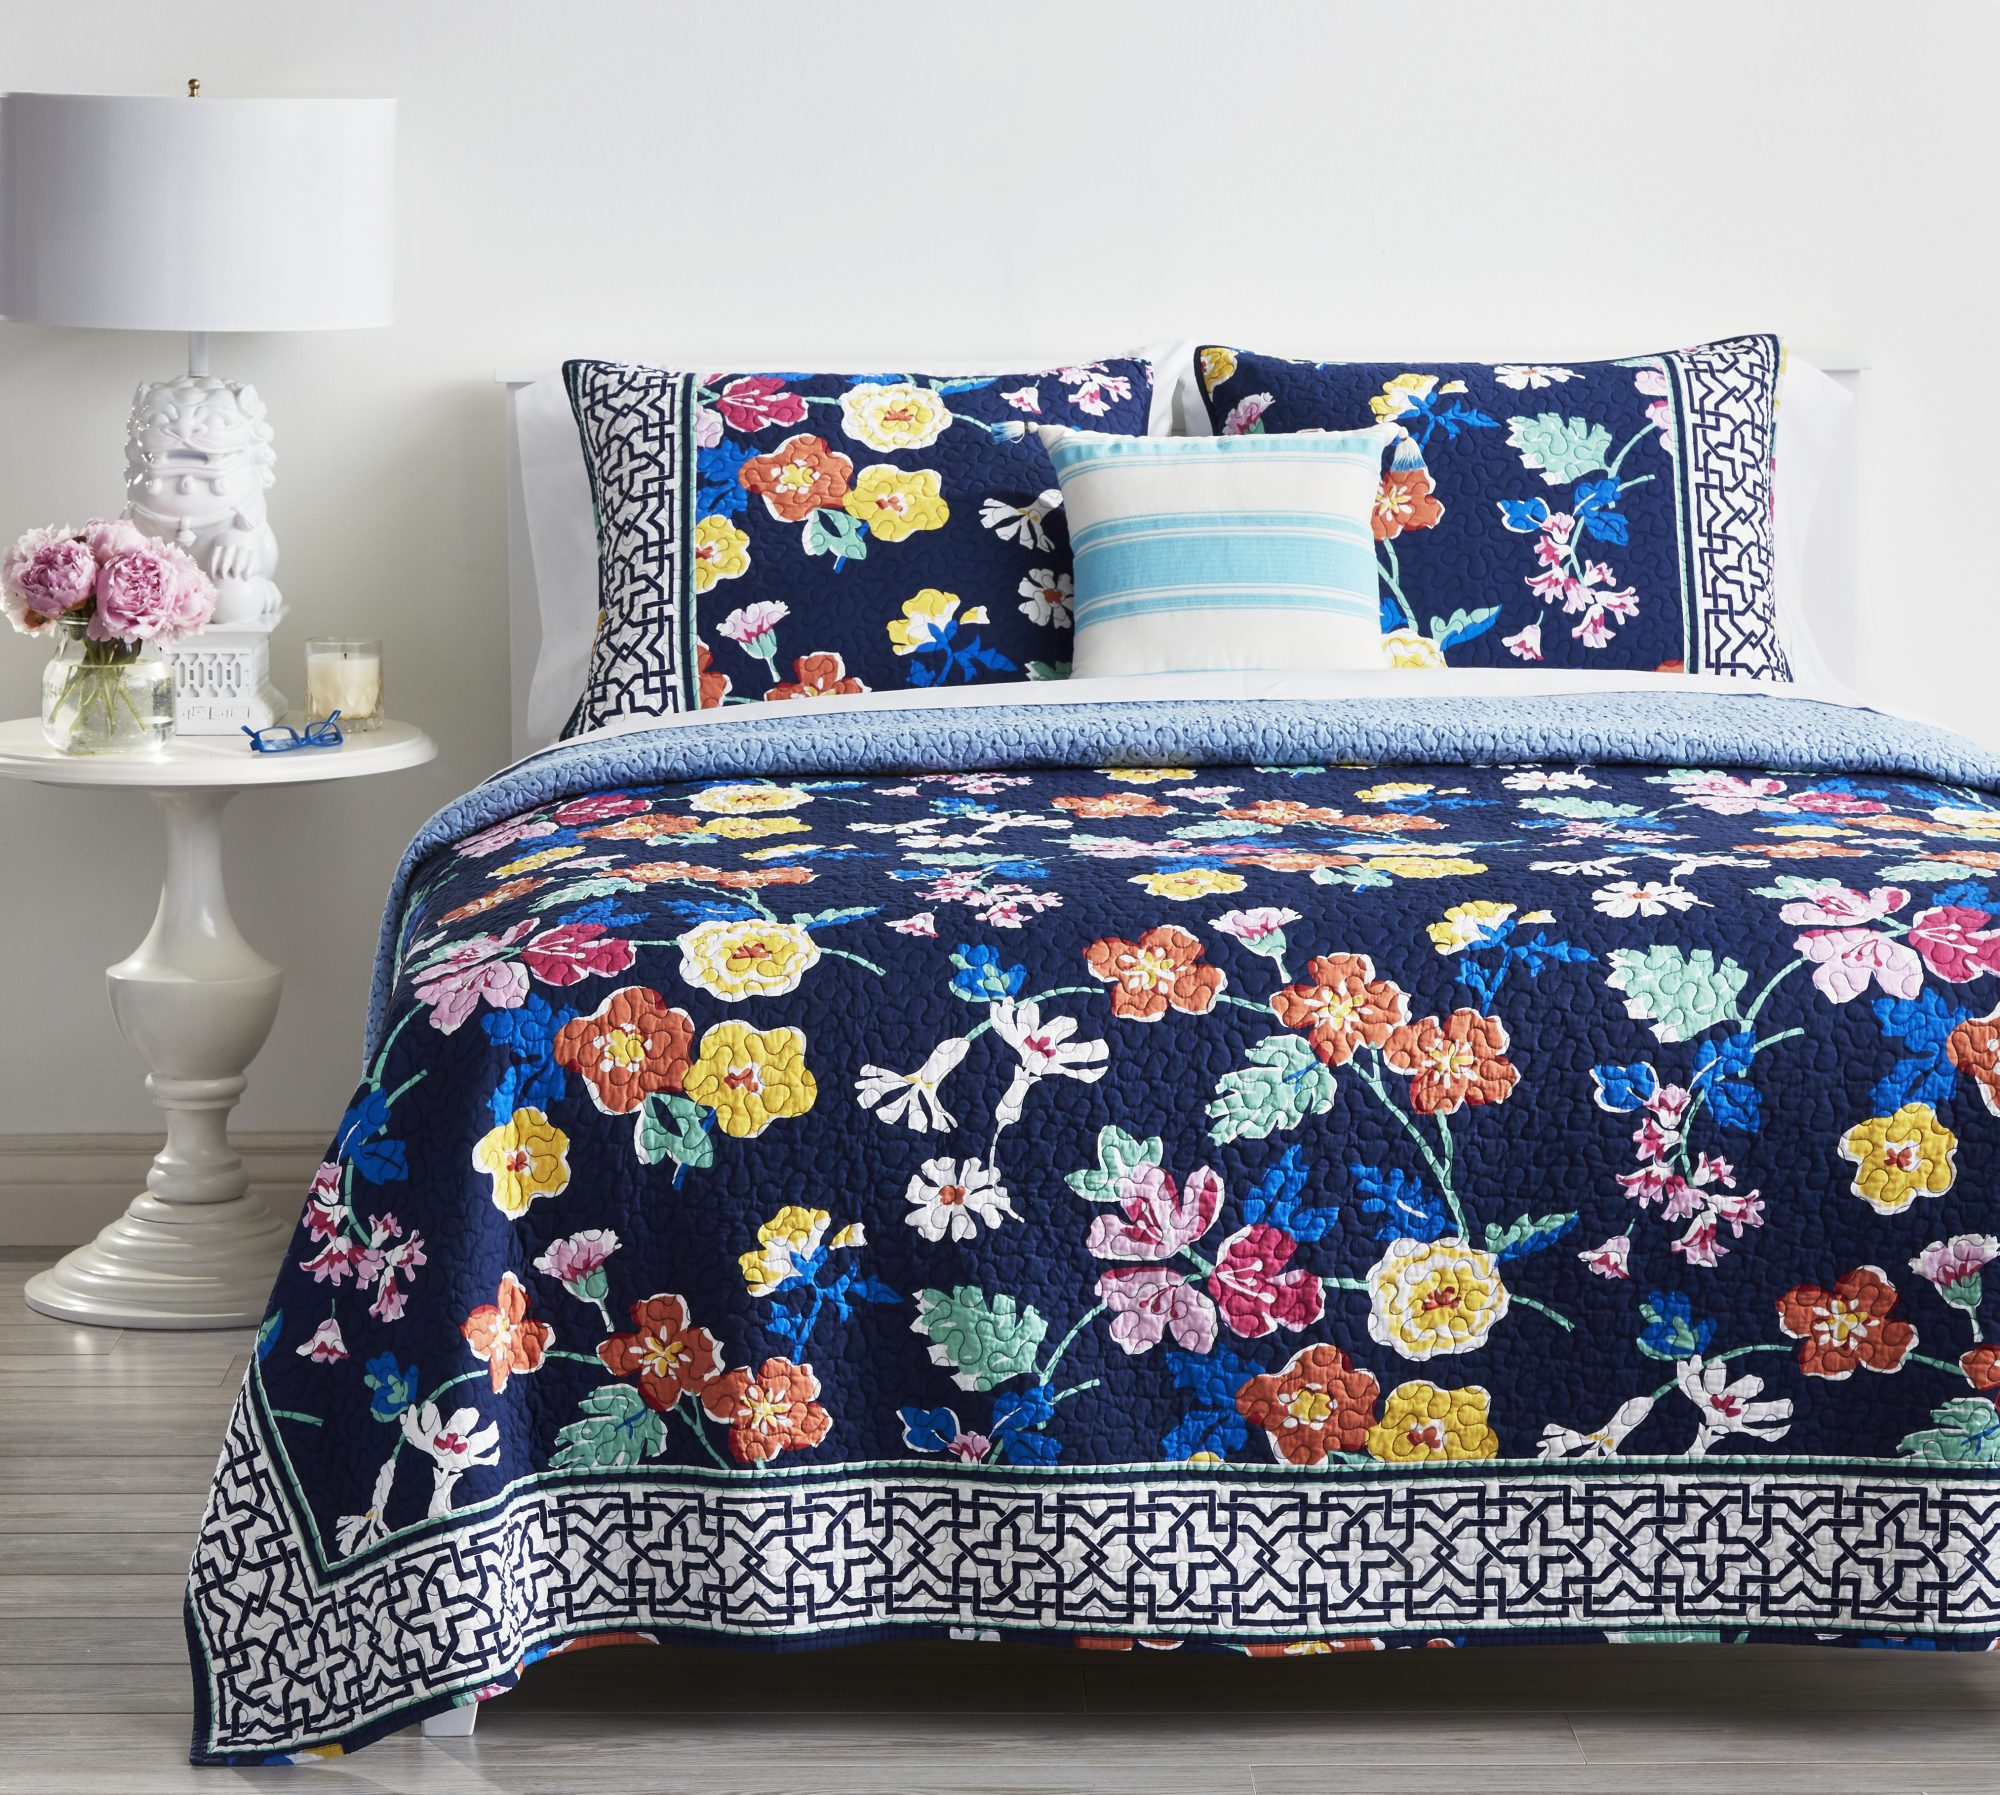 Vera Bradley S New Bedding Collection Is Here And We Want